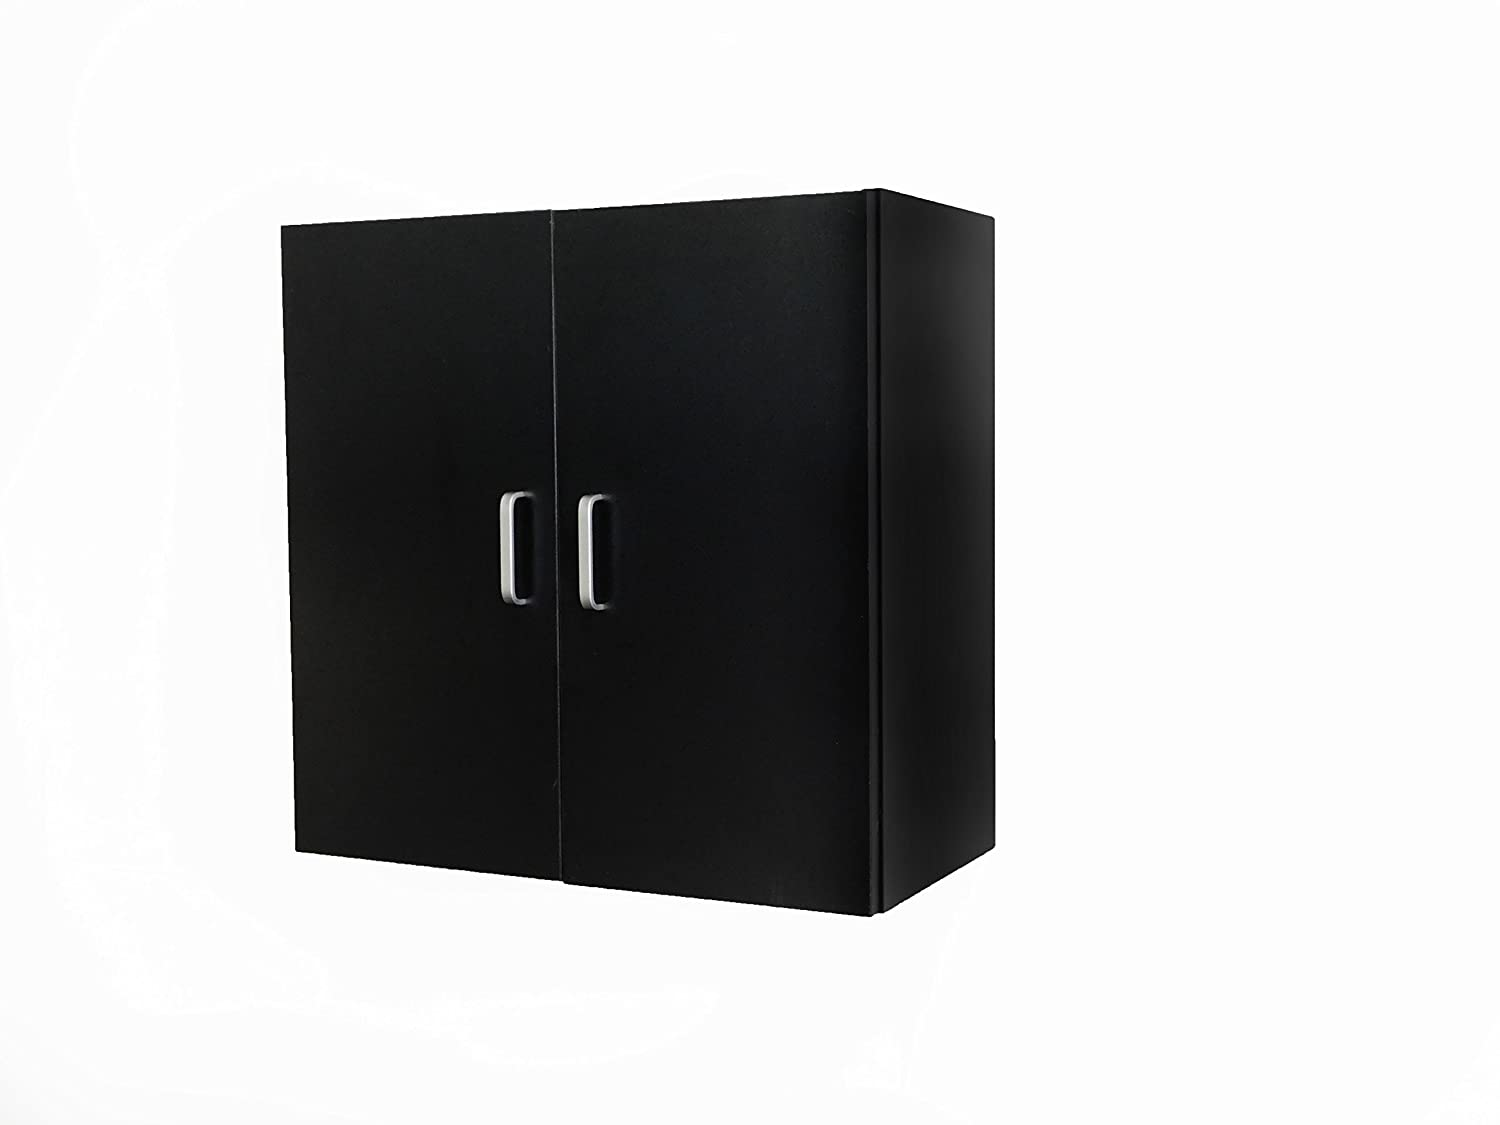 Beauty Salon DOUBLE Upper Cabinets Towel Cabinets Storage for ... on